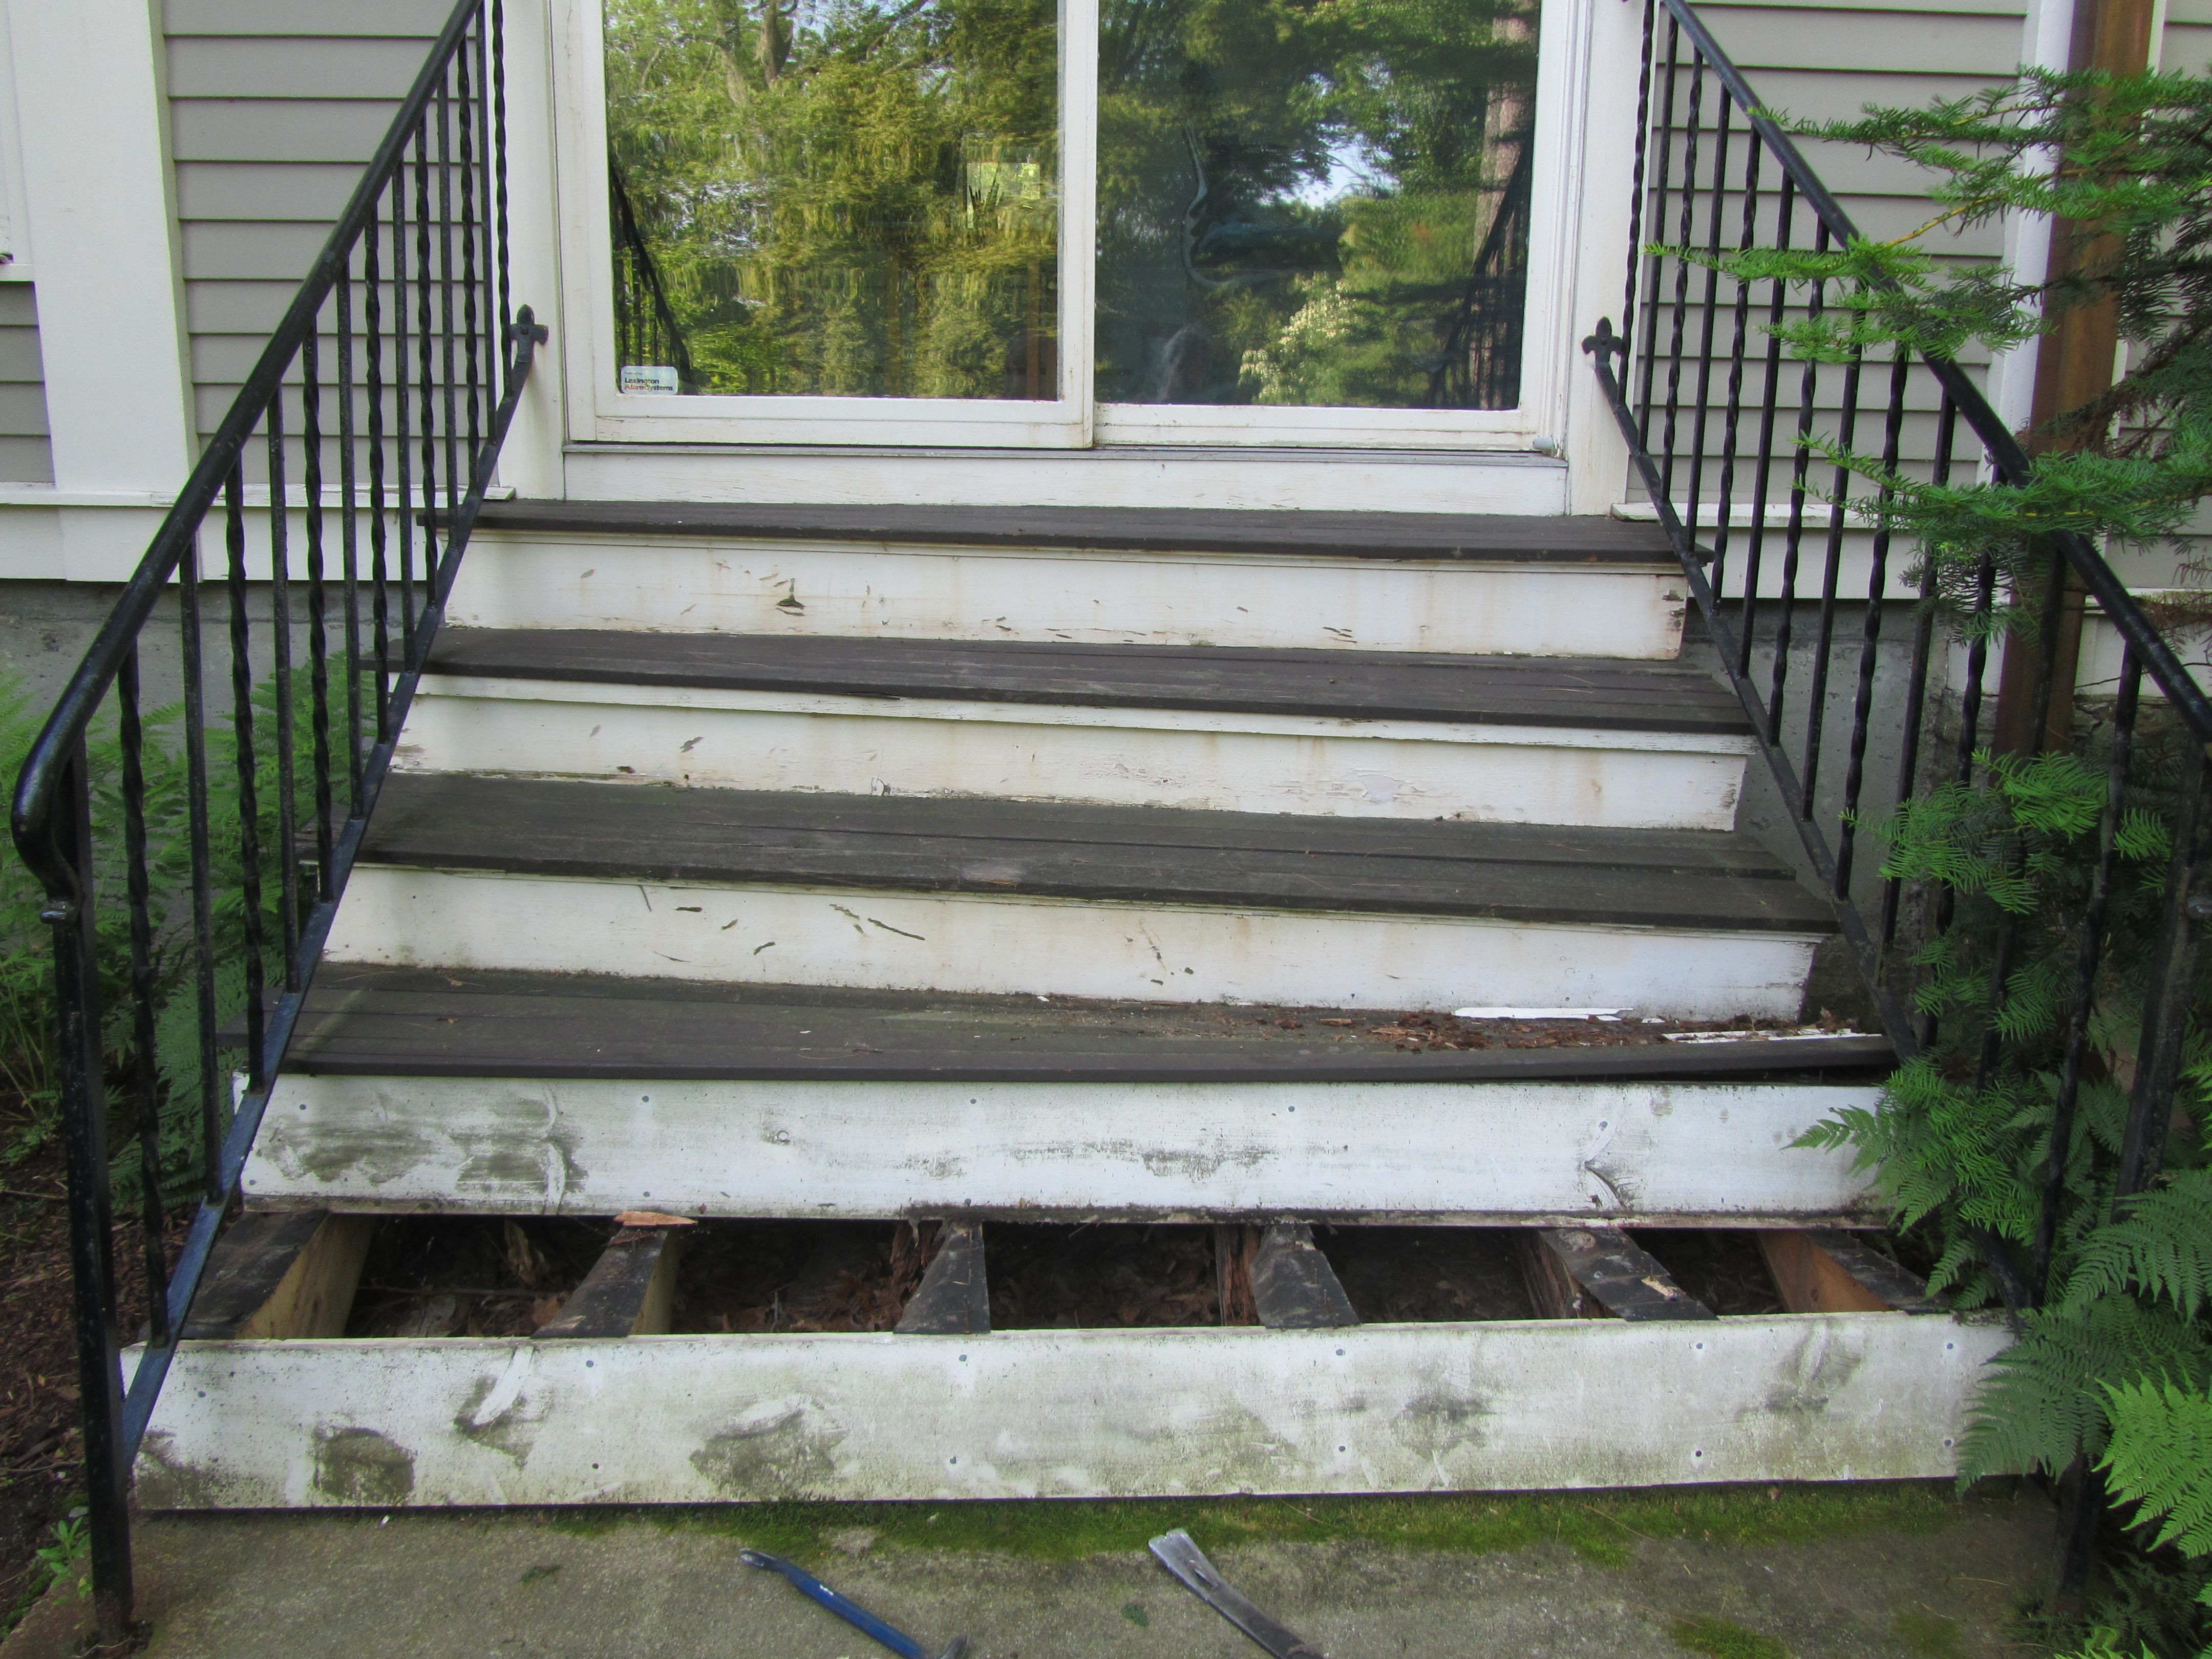 Replacing A Rotting Porch Porch Repair Exterior Stairs Stairs | Replacing Concrete Steps With Wood | Stringers | Stair Railing | Composite Decking | Pouring Concrete | Concrete Slab